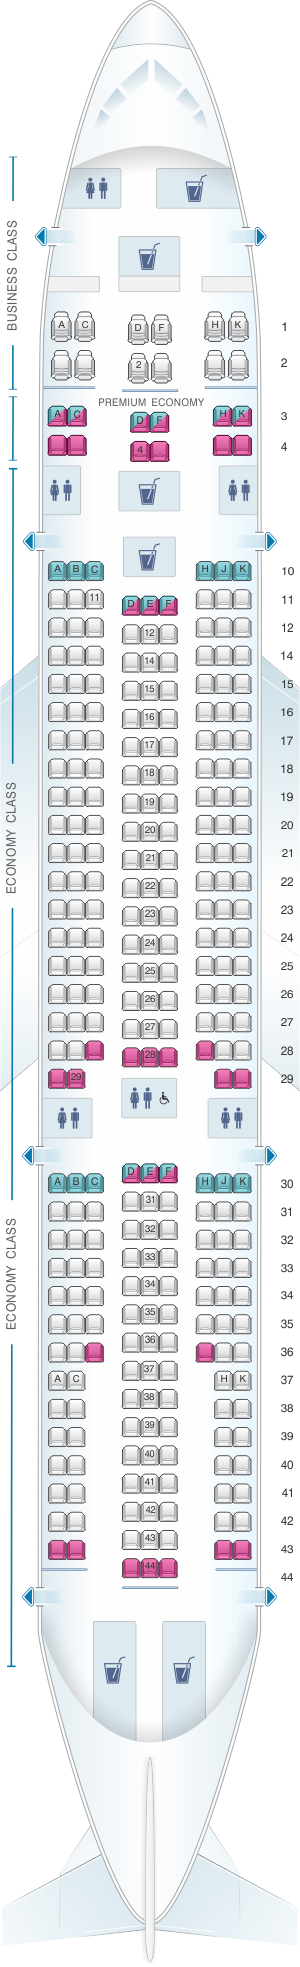 Seat map for Corsair Airbus A330 200